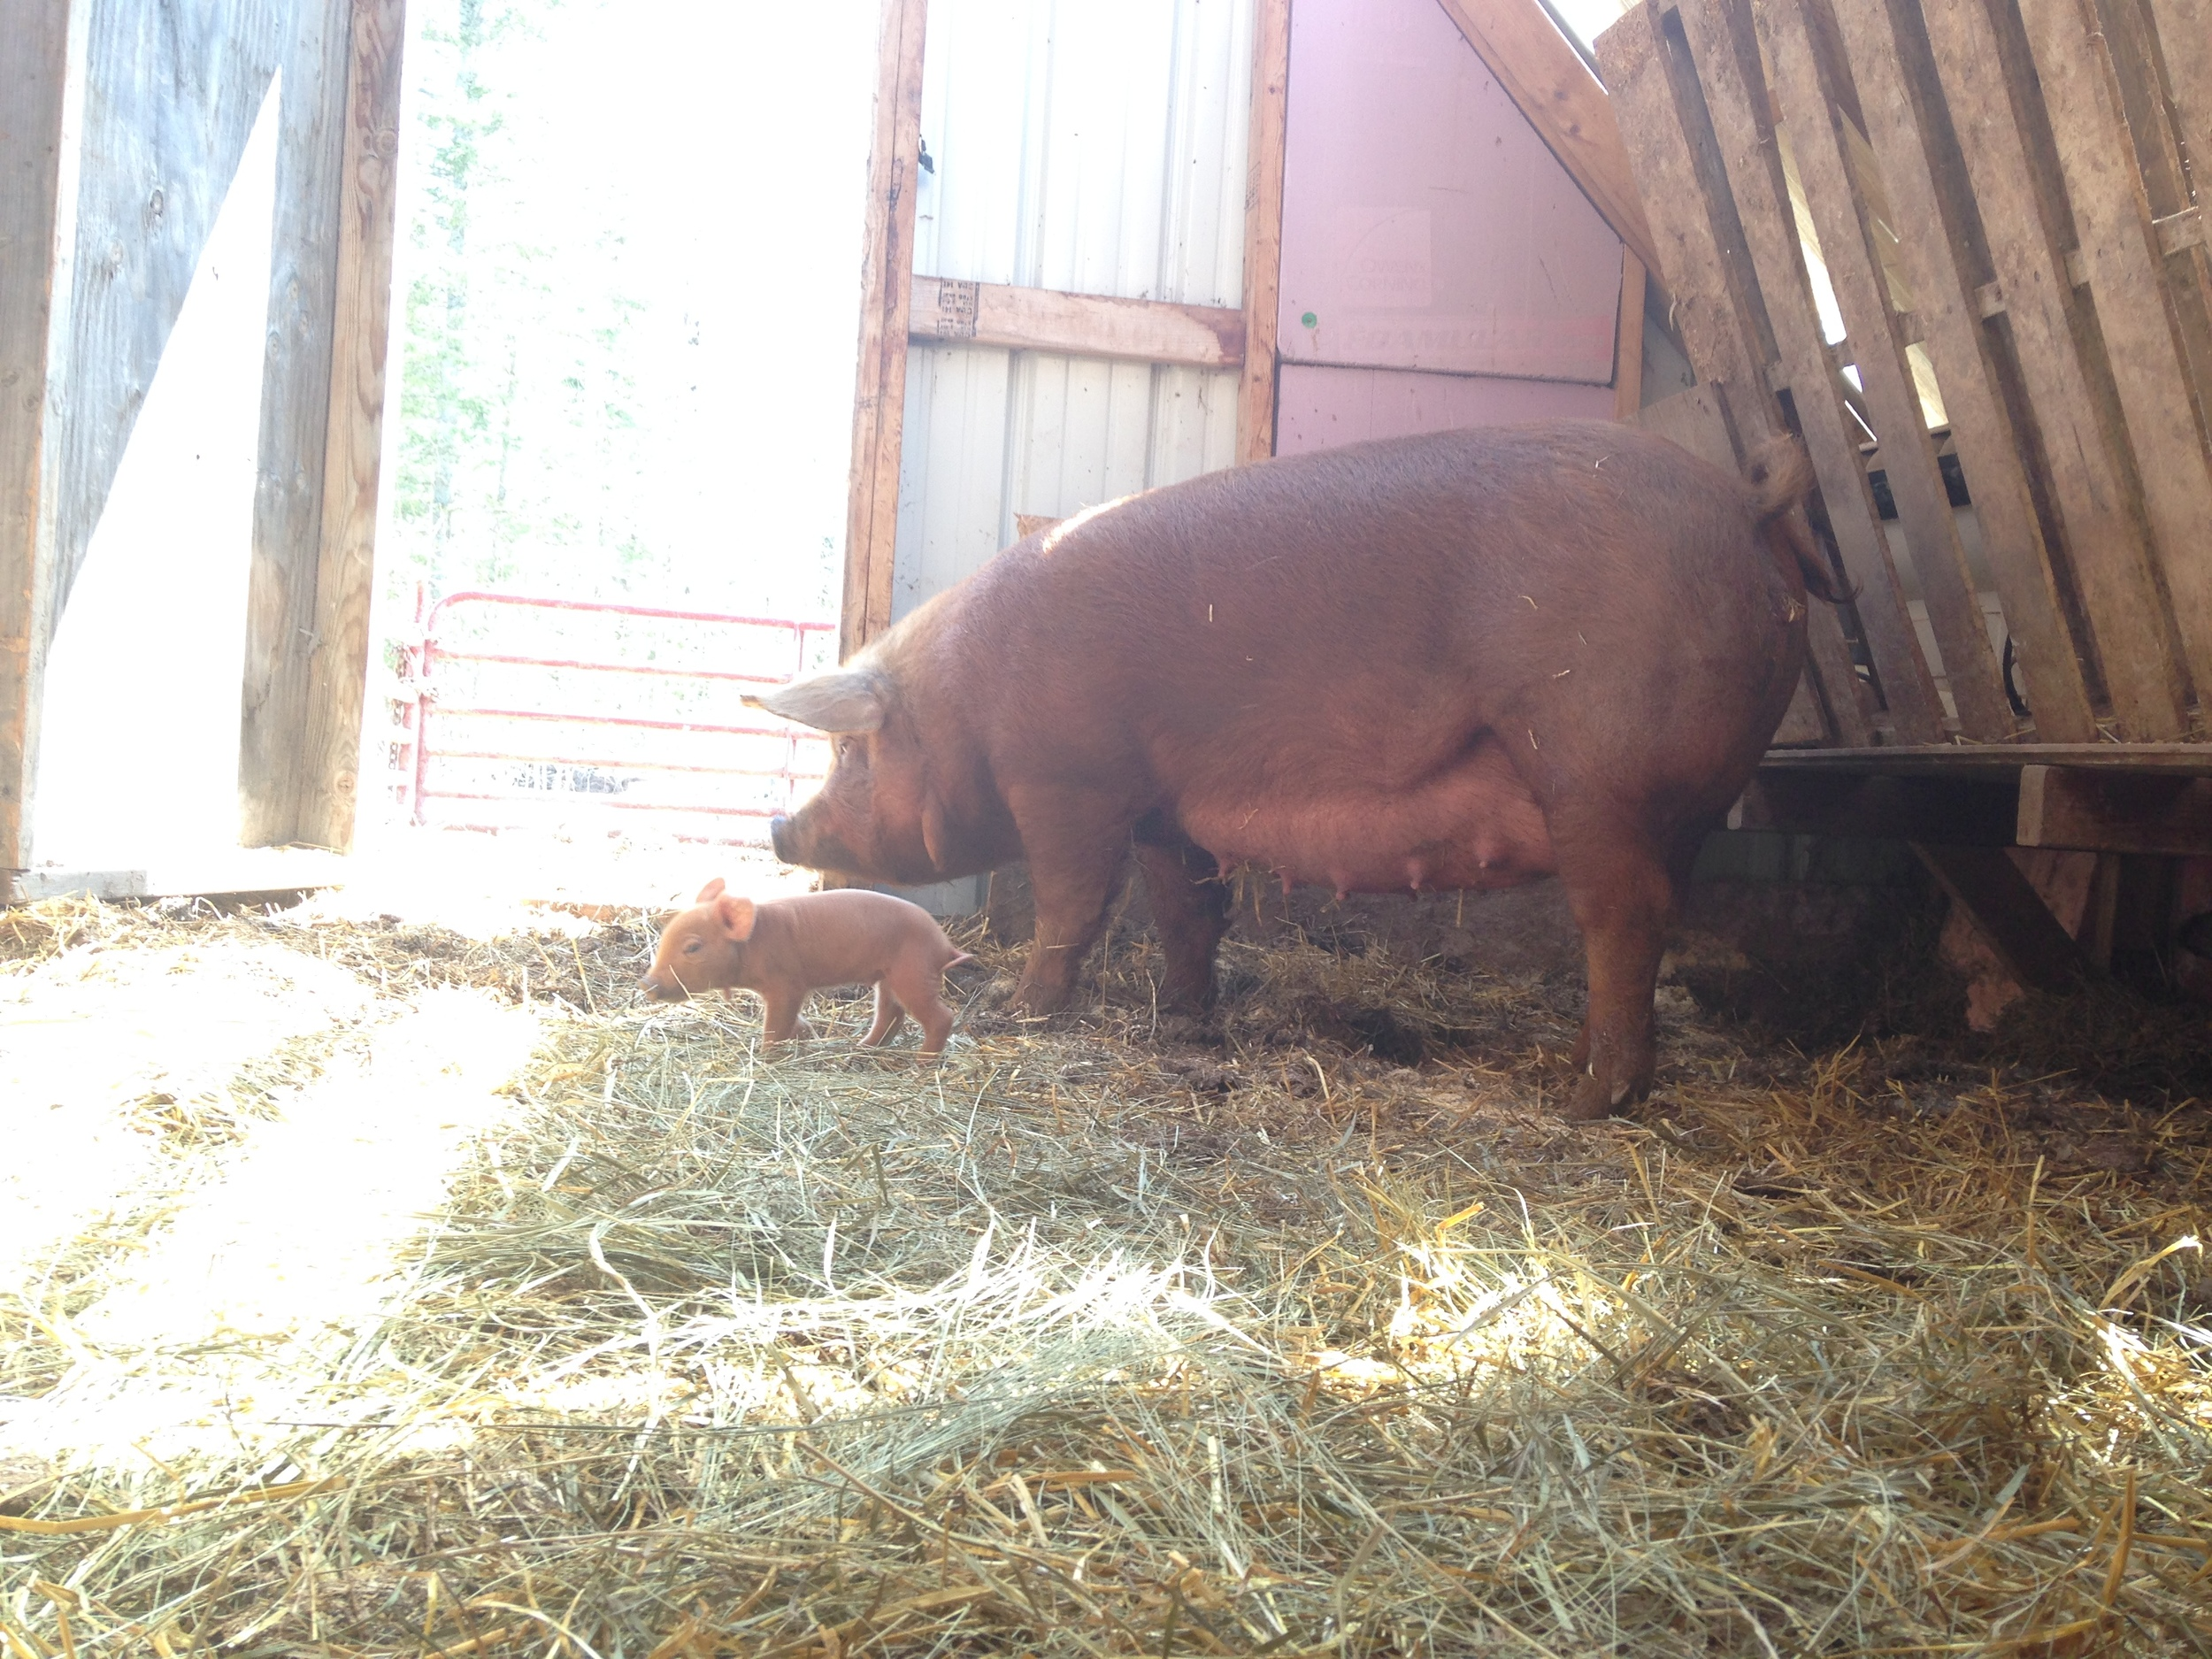 Sows are gentle giants...